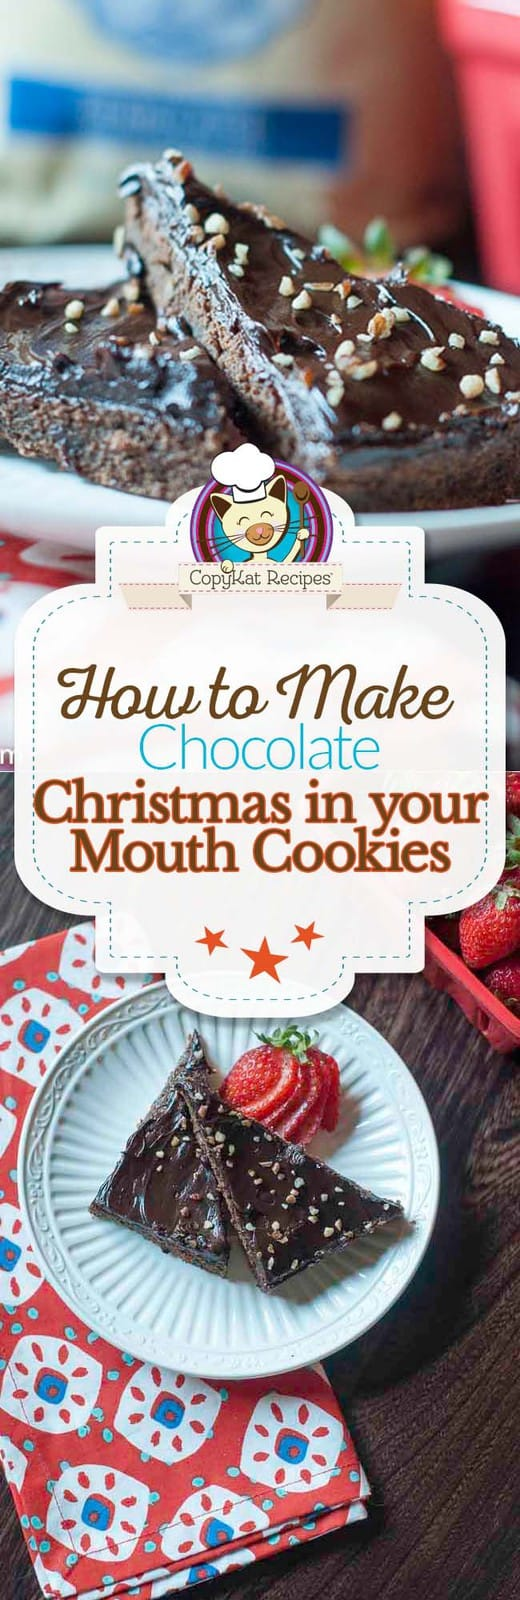 Make these delicious chocolate orange bar cookies, they taste like Christmas in your mouth!